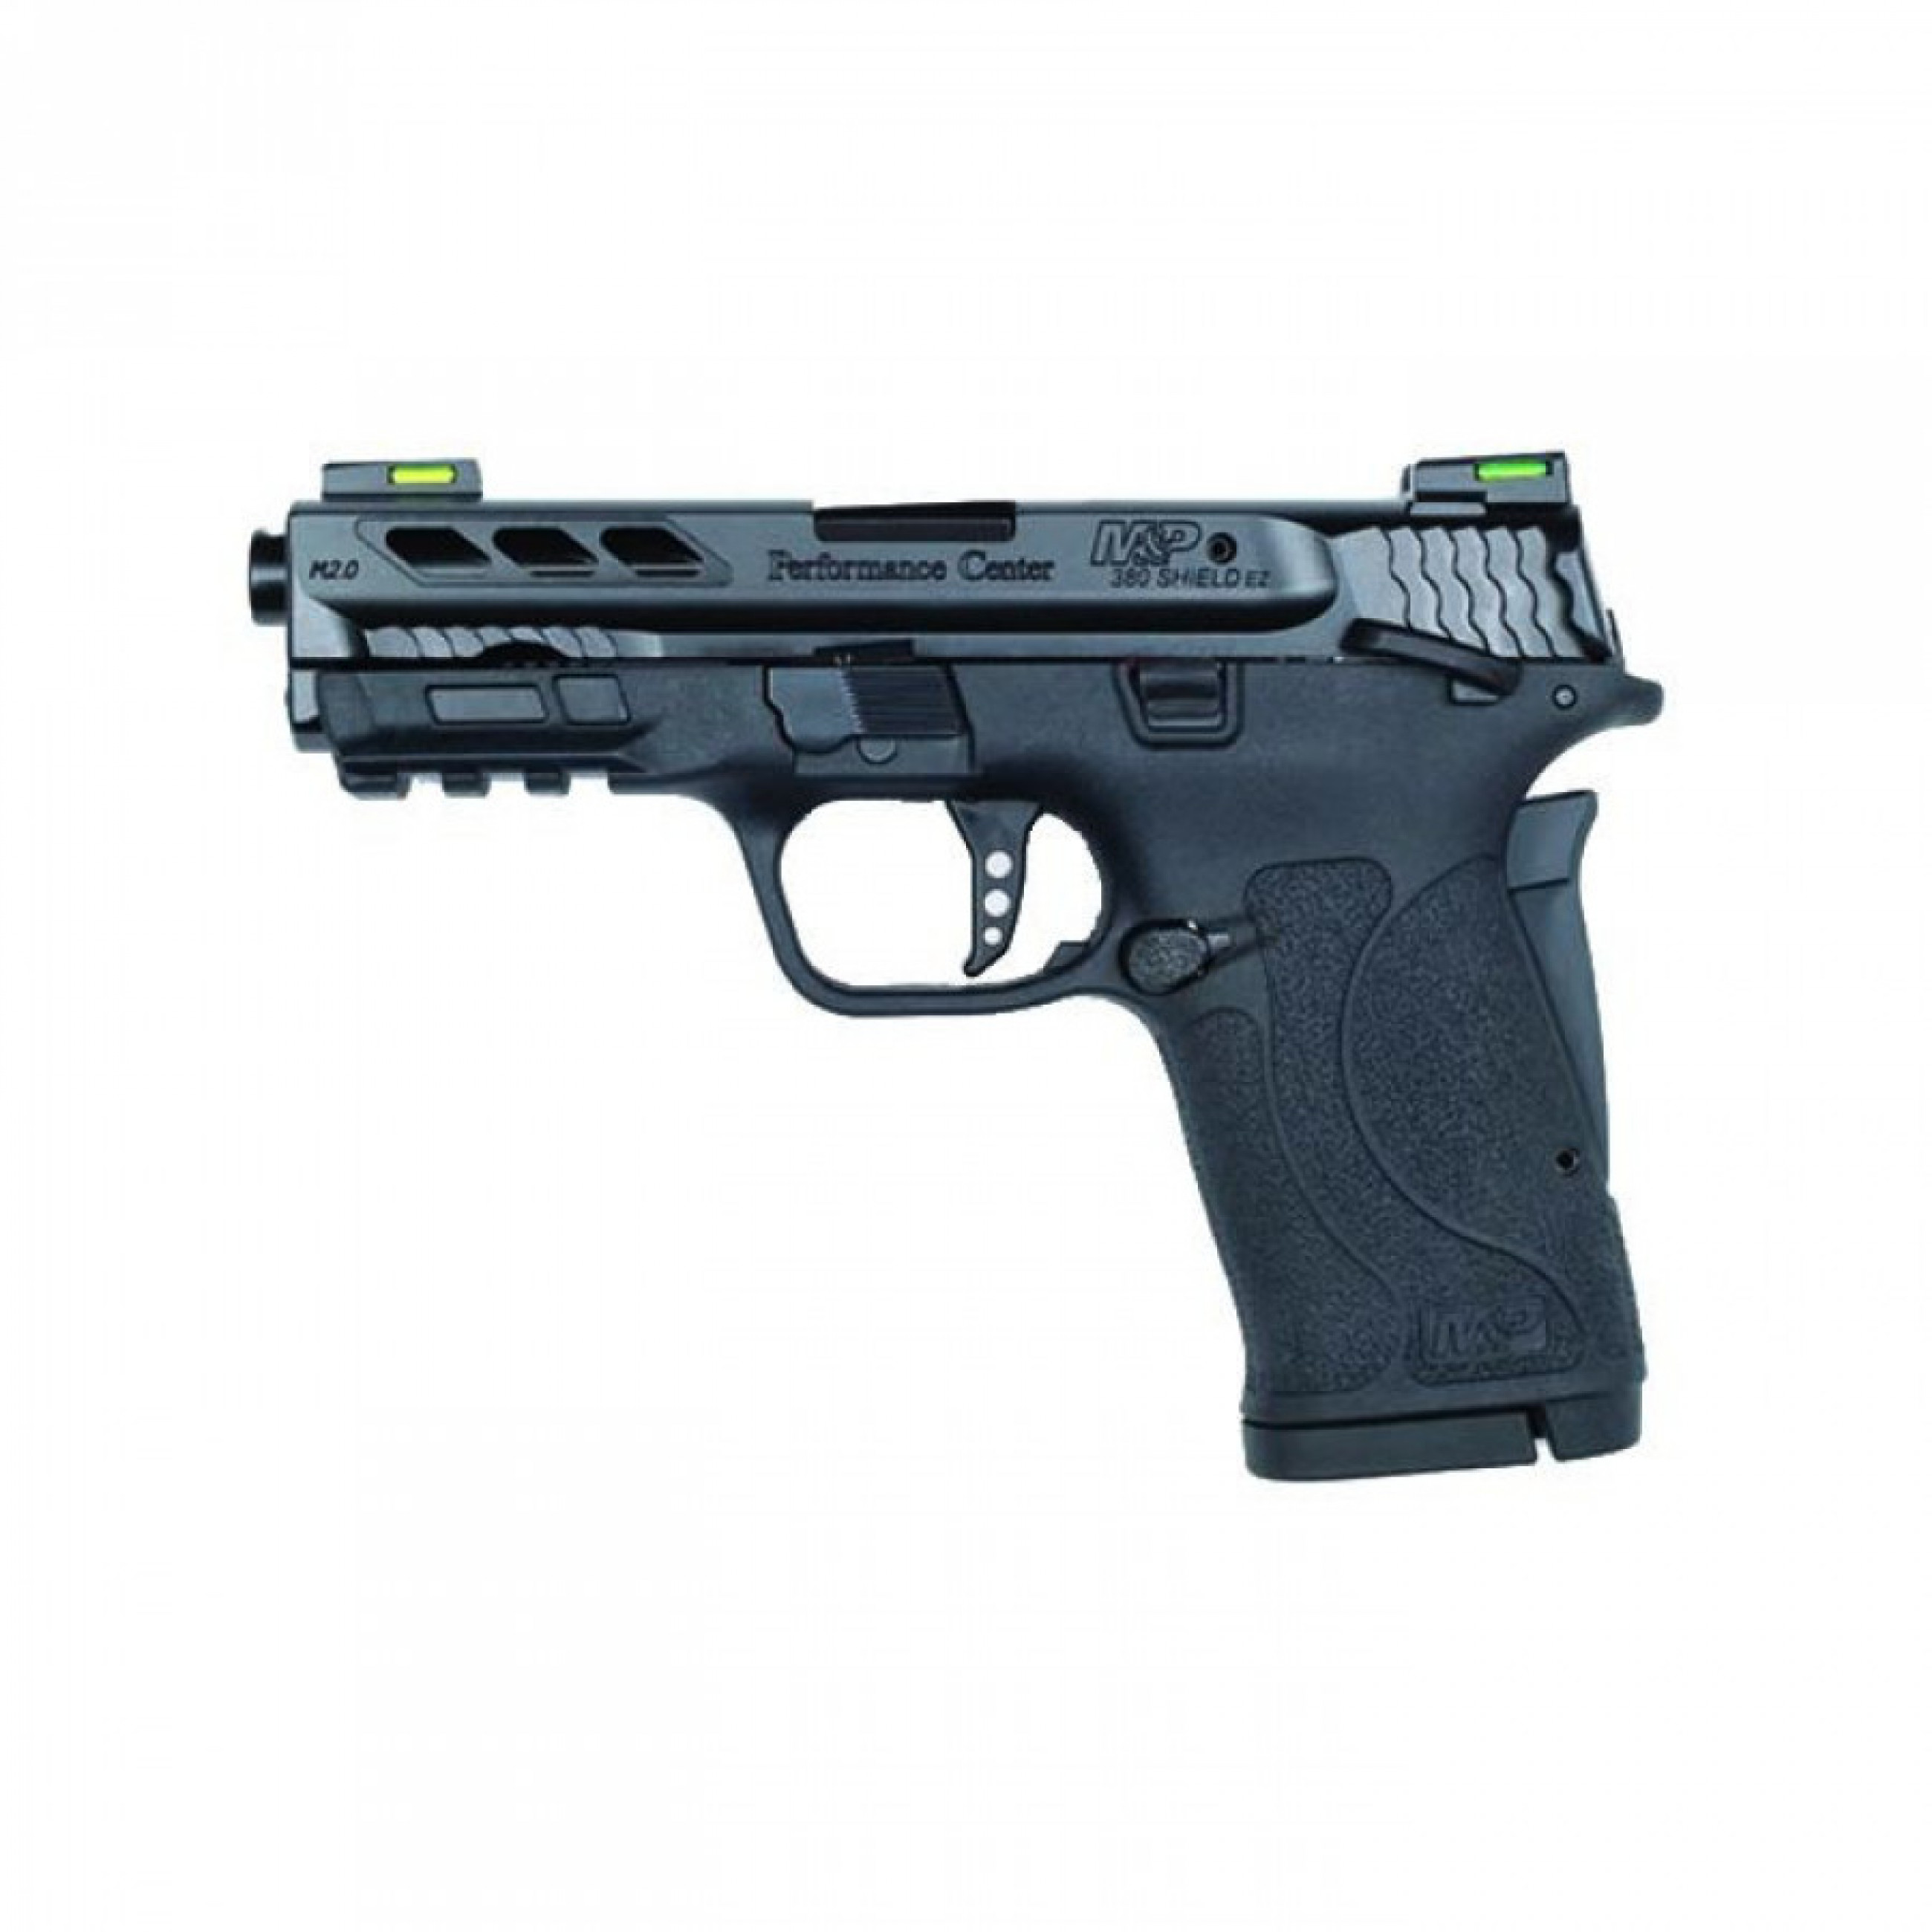 Smith & Wesson EZ-380  Performance Center.  9/23/21 - Product Image